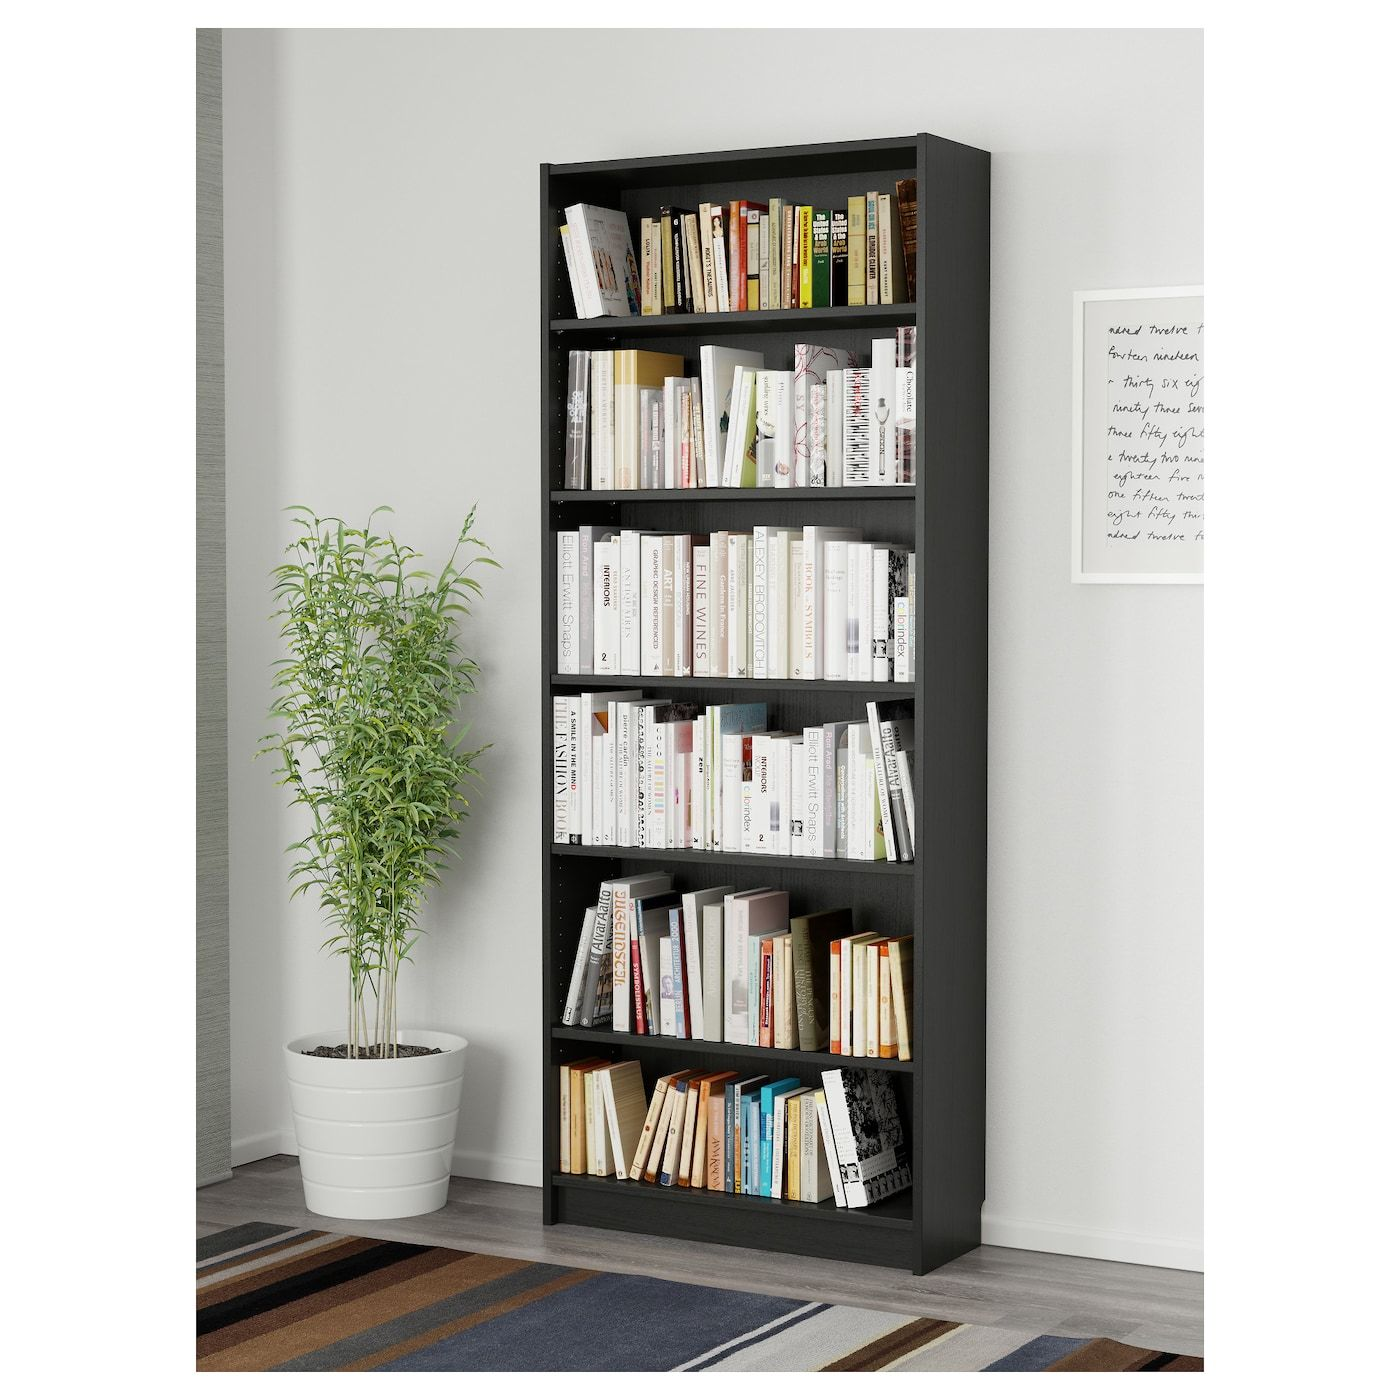 Billy Bookcase Black Brown 31 1 2x11x79 1 2 Billy Bookcase Ikea Billy Bookcase Ikea